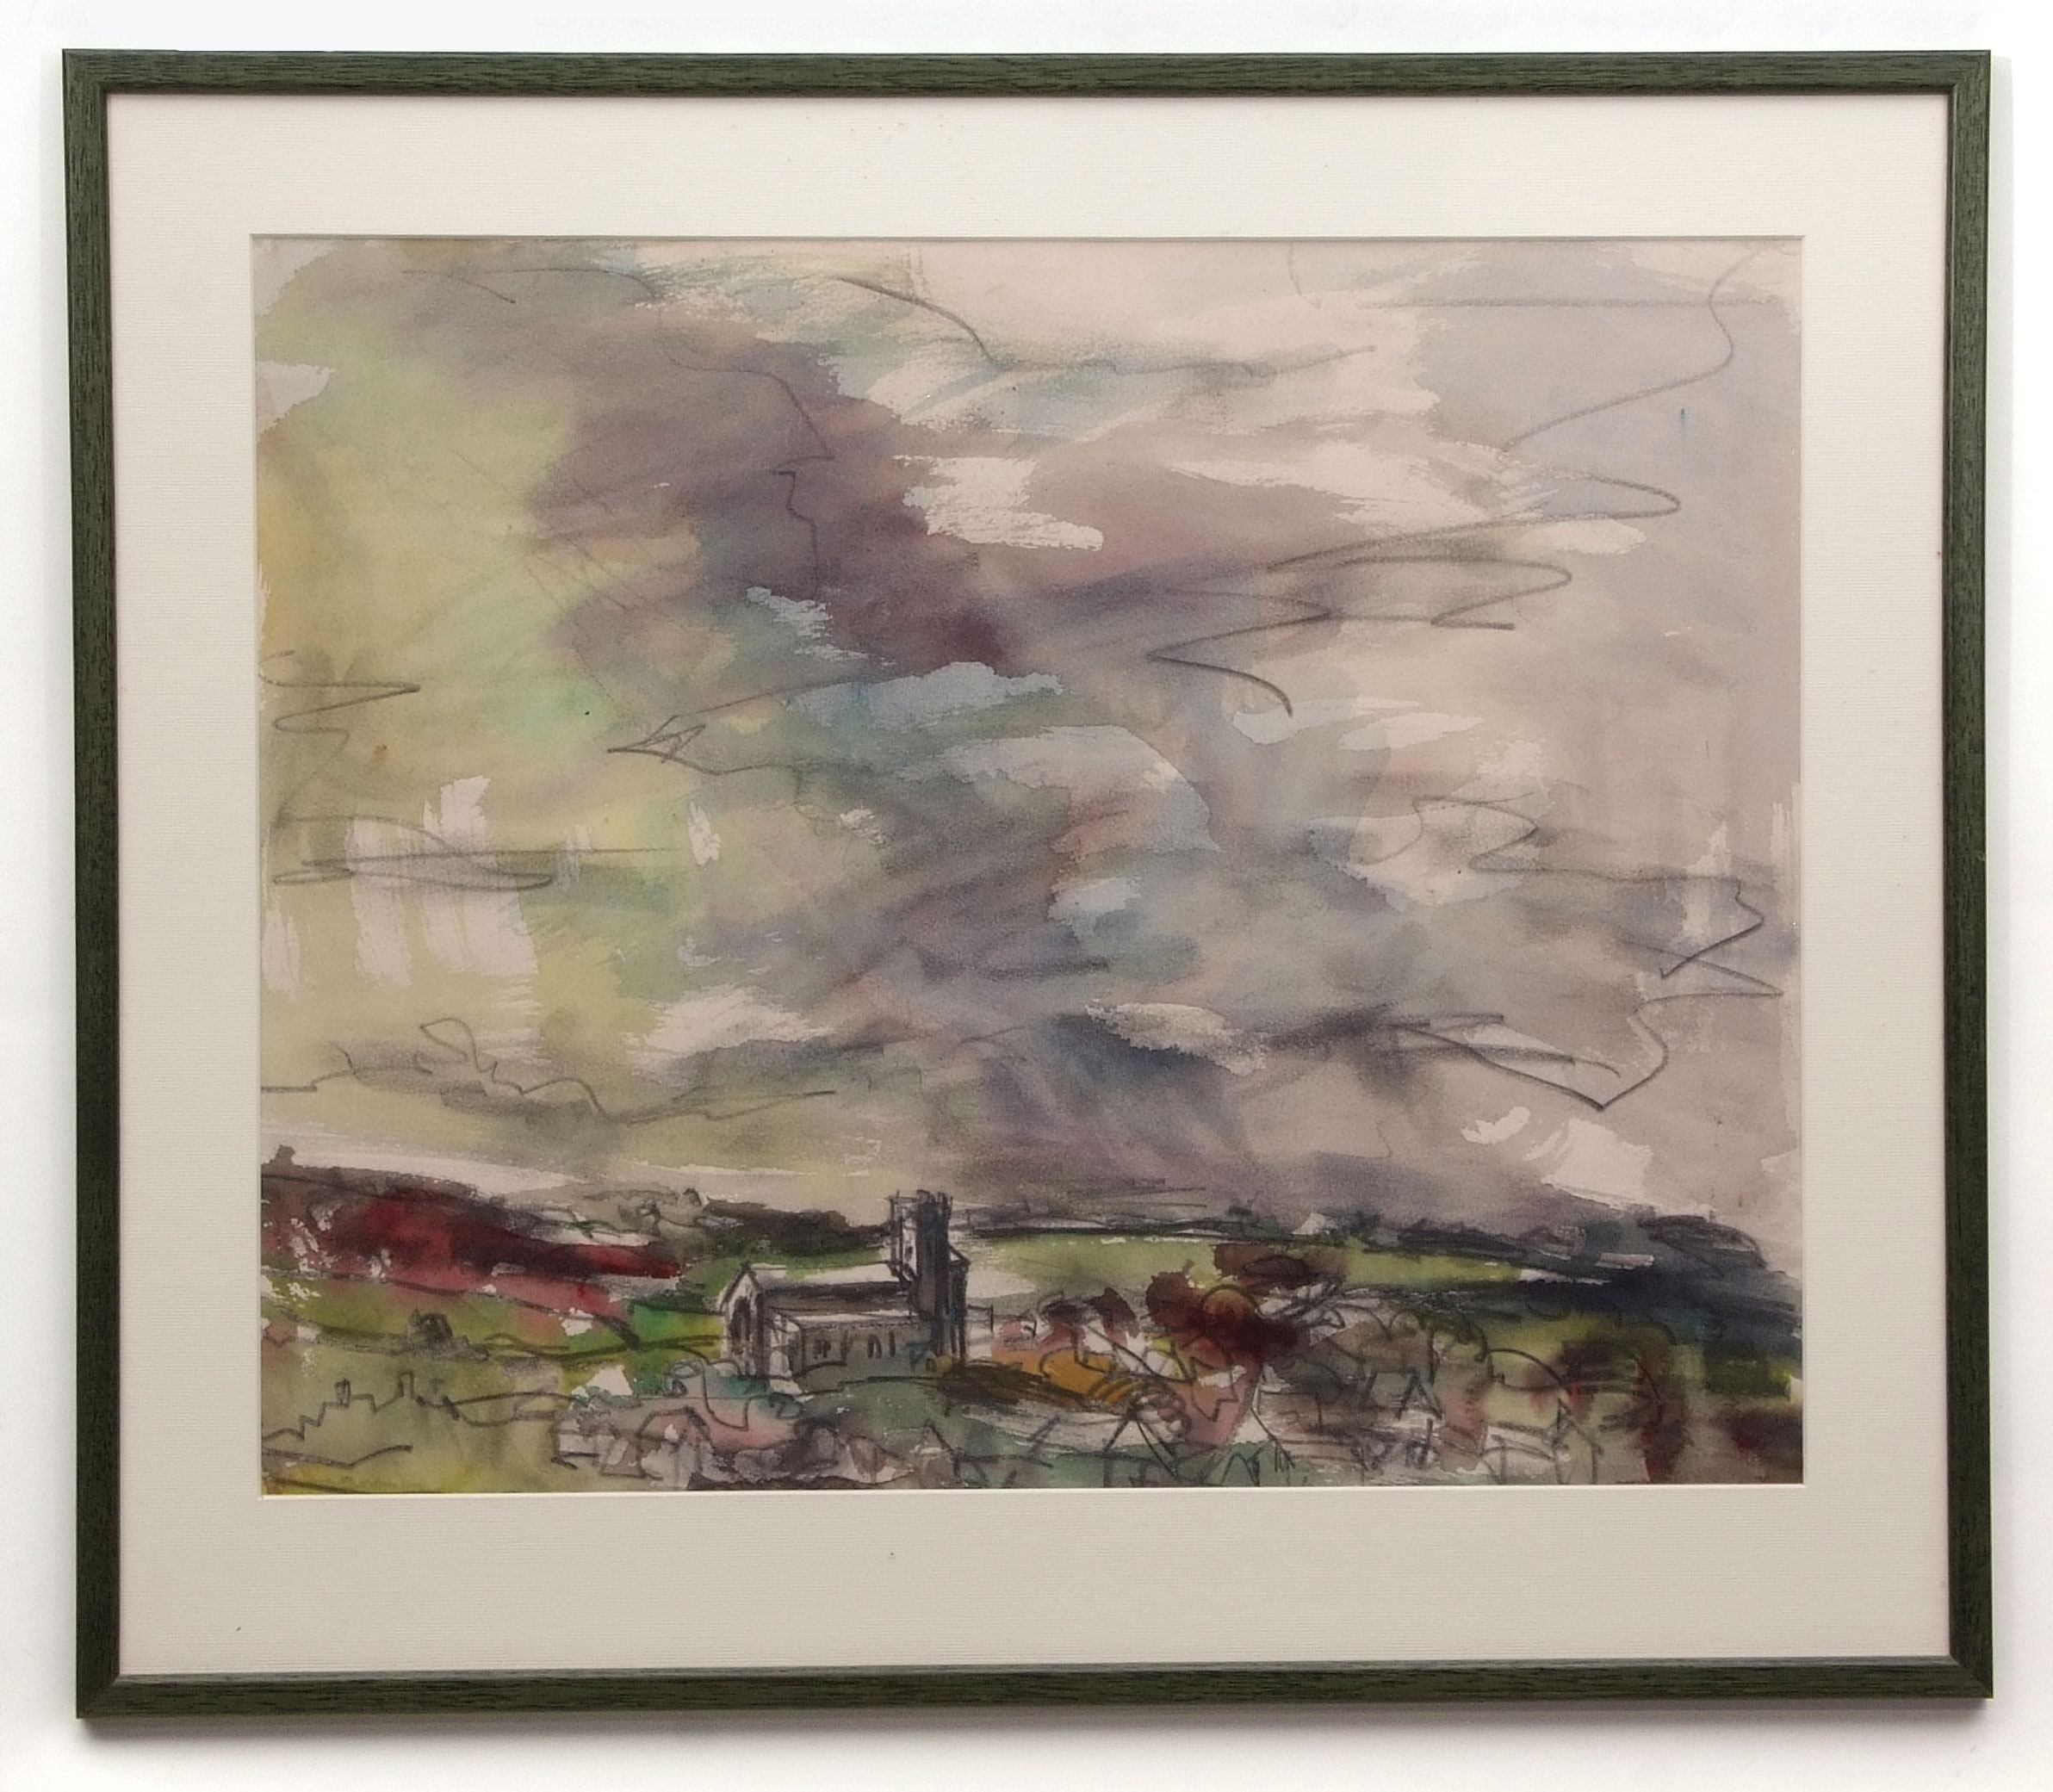 David Smith, Landscapes, coastal scenes etc, group of 13 watercolours, some signed, assorted - Image 5 of 13